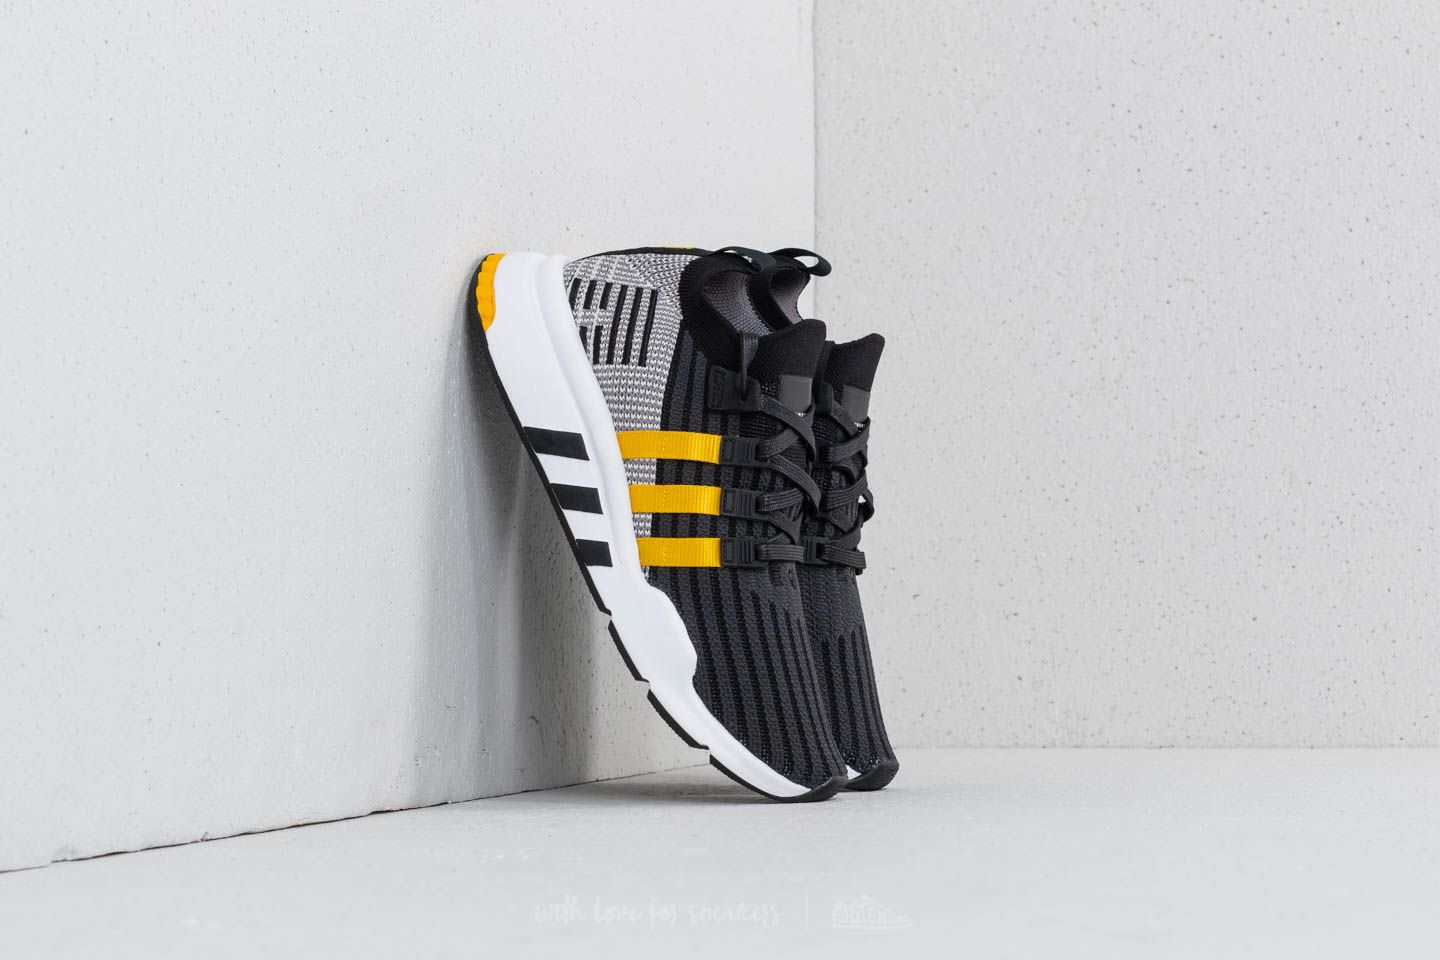 Yellow Primeknit Black Ftw Adidas Core Support Eqt Mid Adv lJTK1cF3